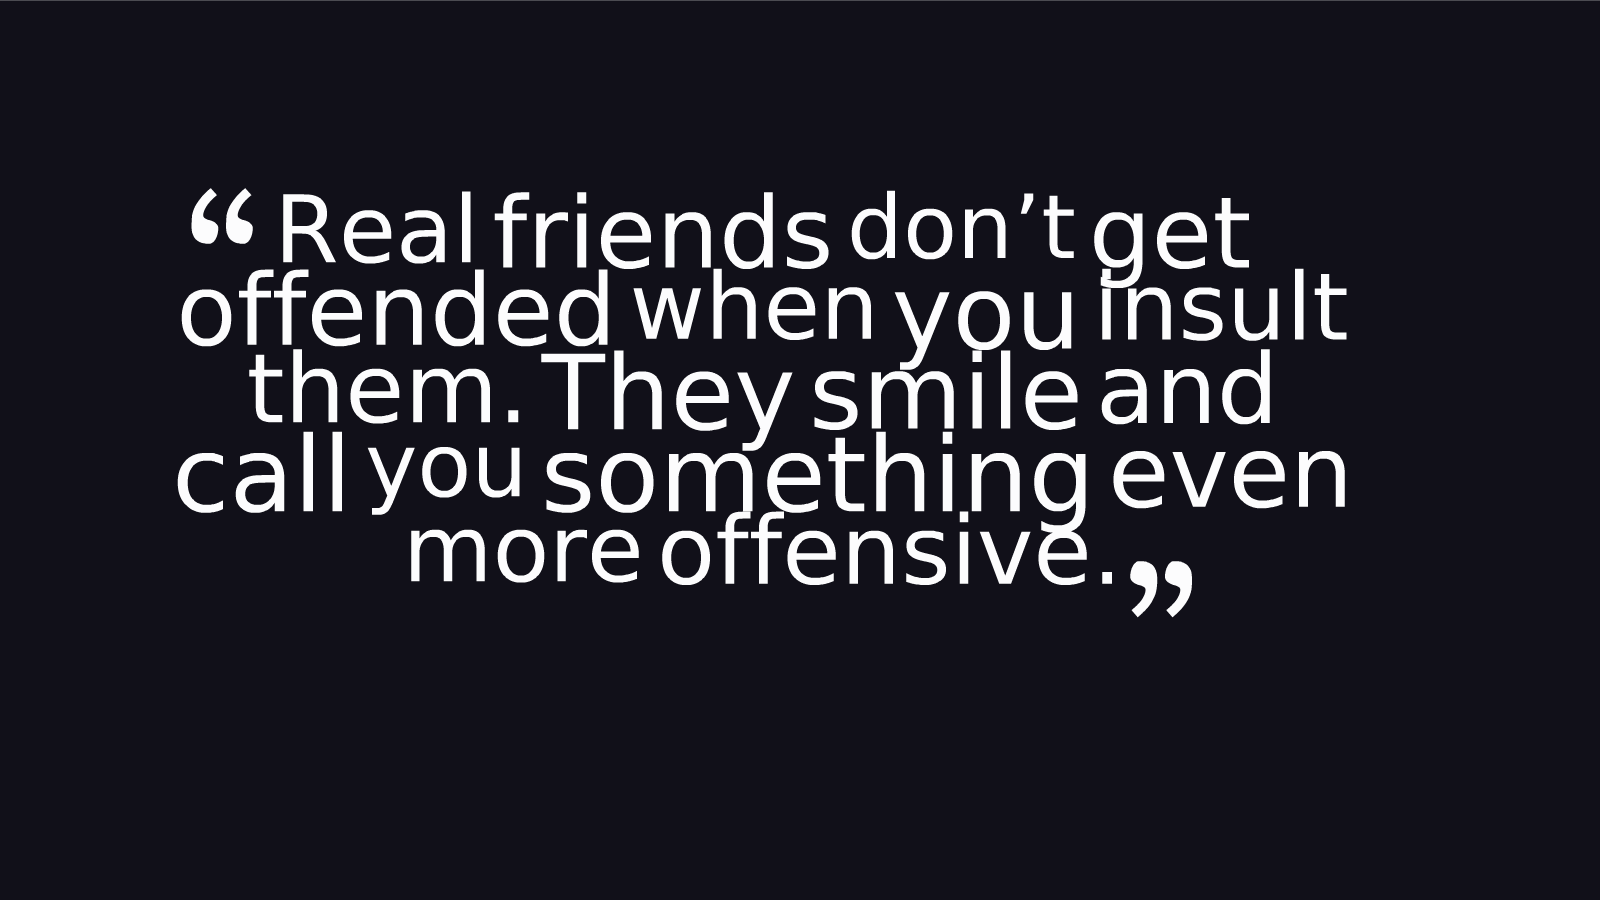 Pictures Of Quotes About Friendship Classy Quotesaboutfriendship2Freehdwallpapers  Hd Wallpaper